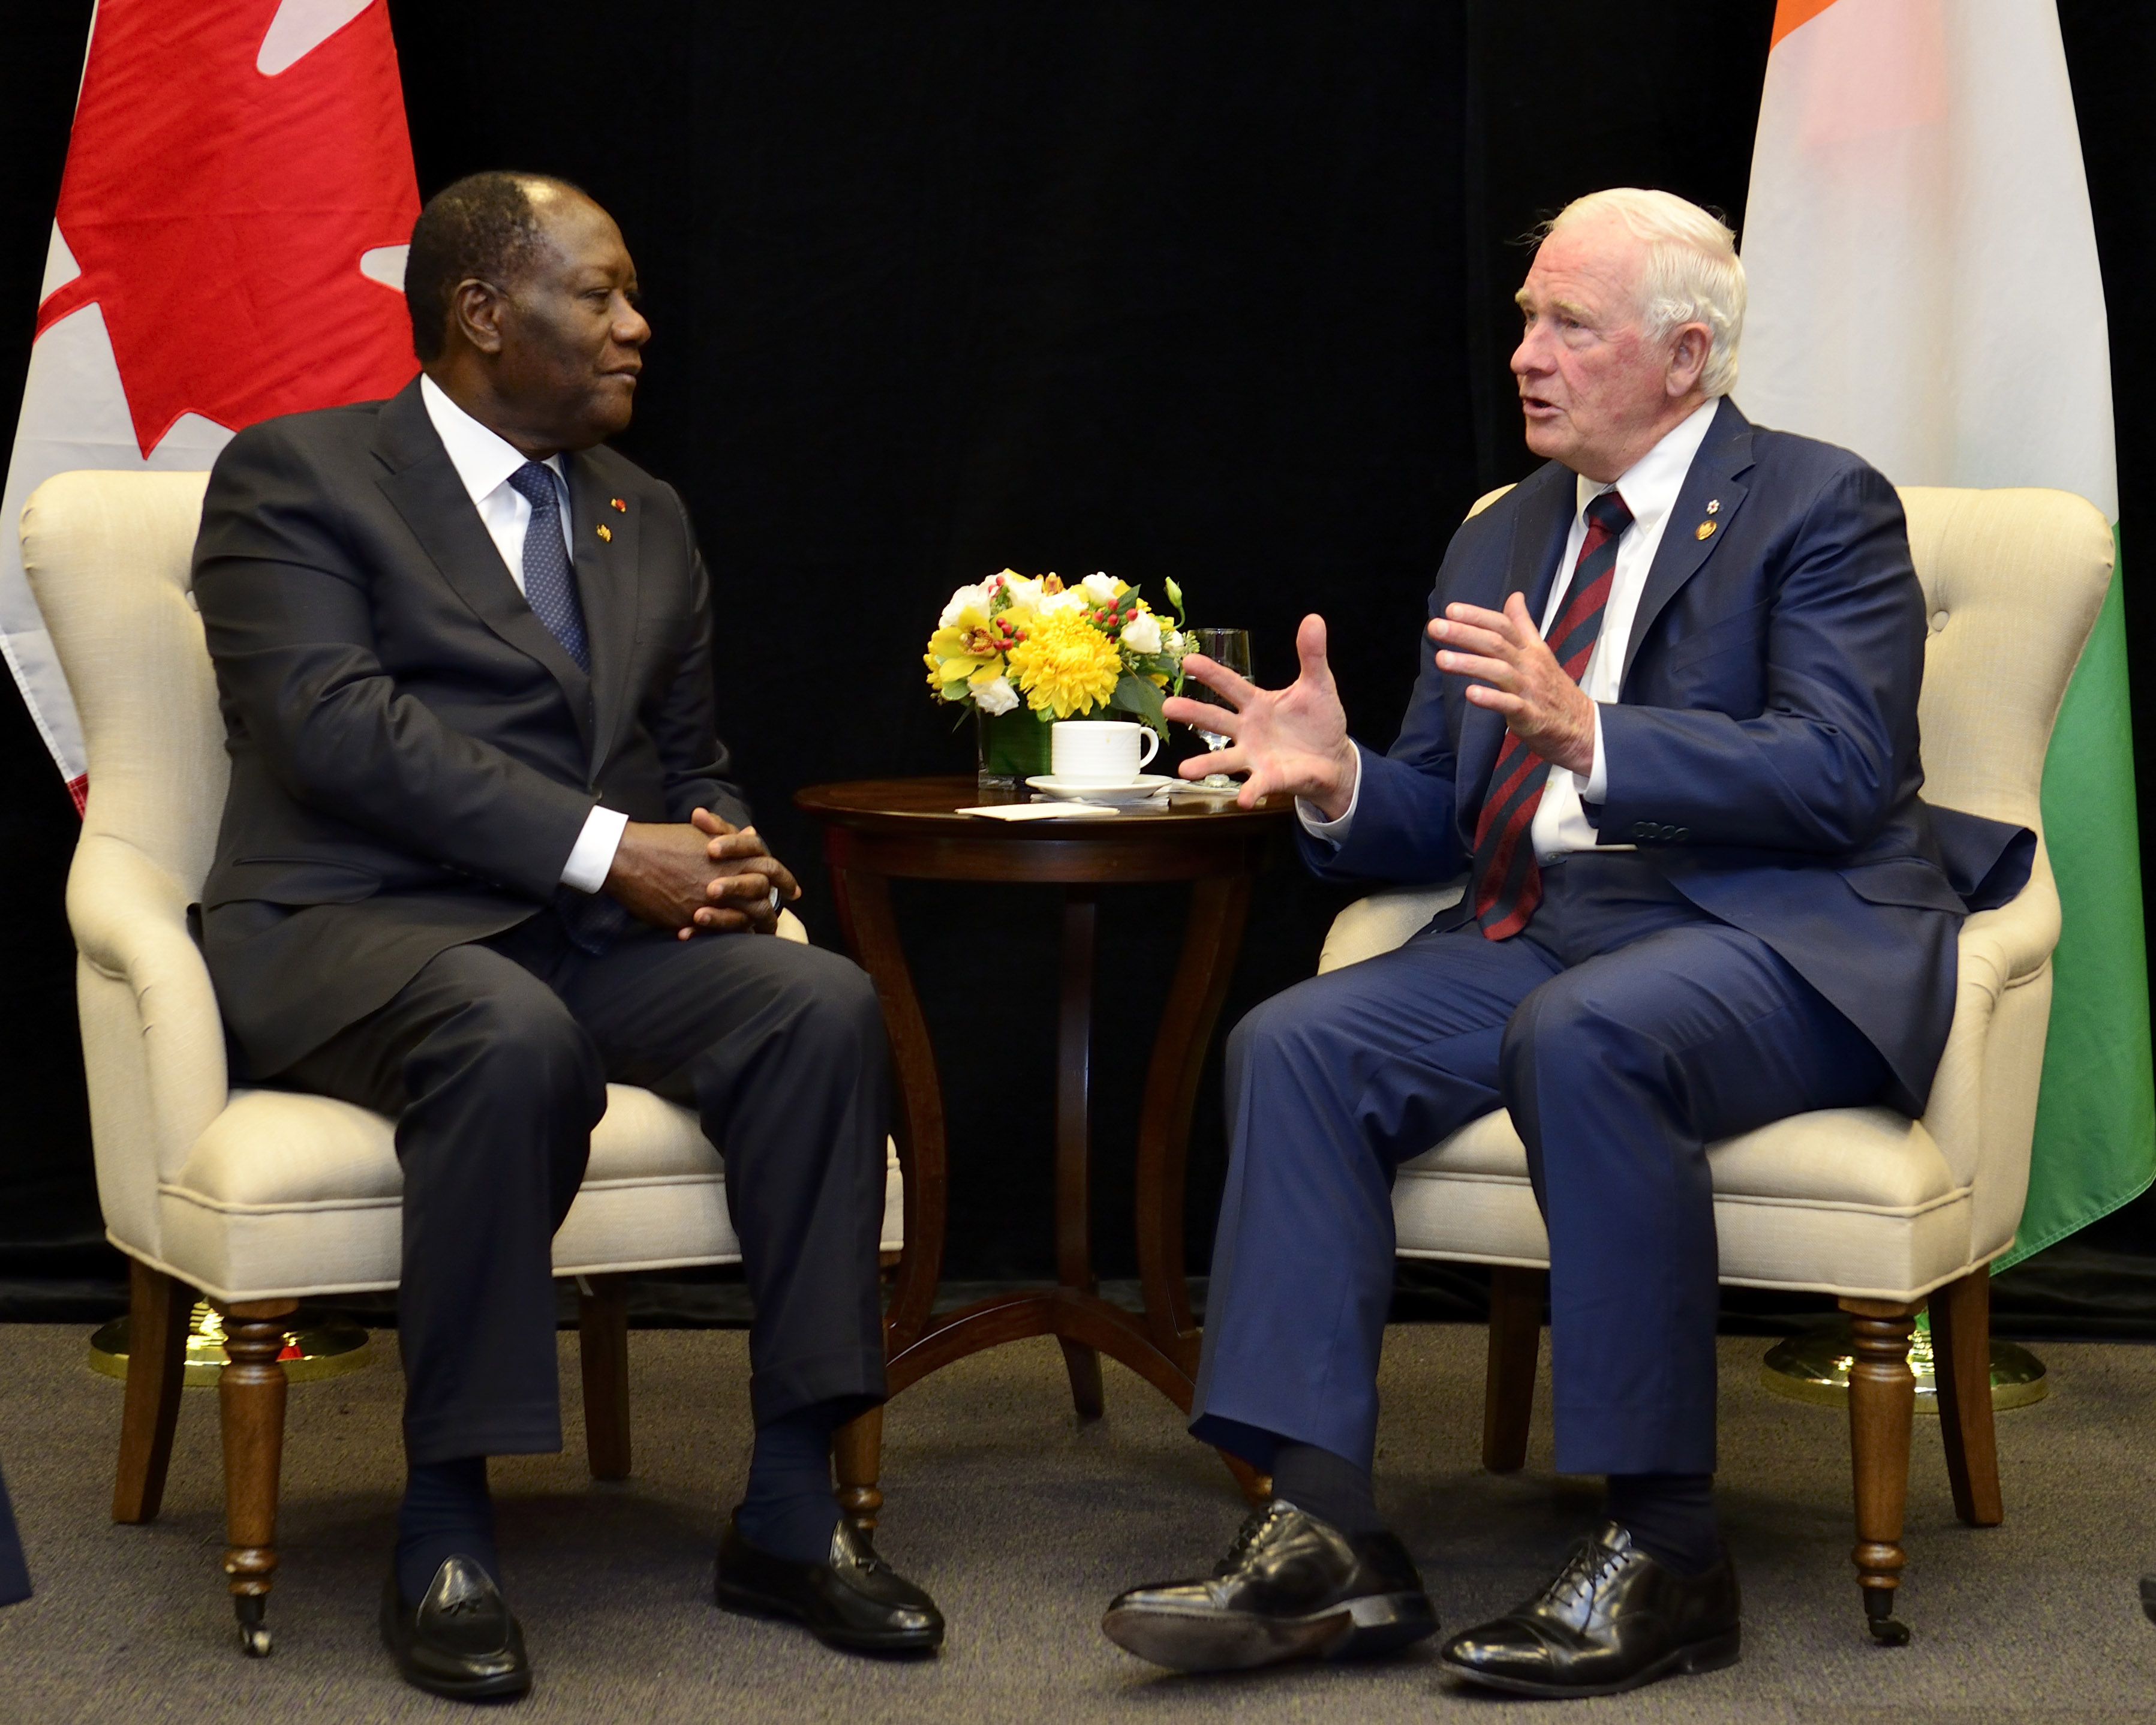 He also met with Alassane Ouattara, President of the Republic of Ivory Coast.